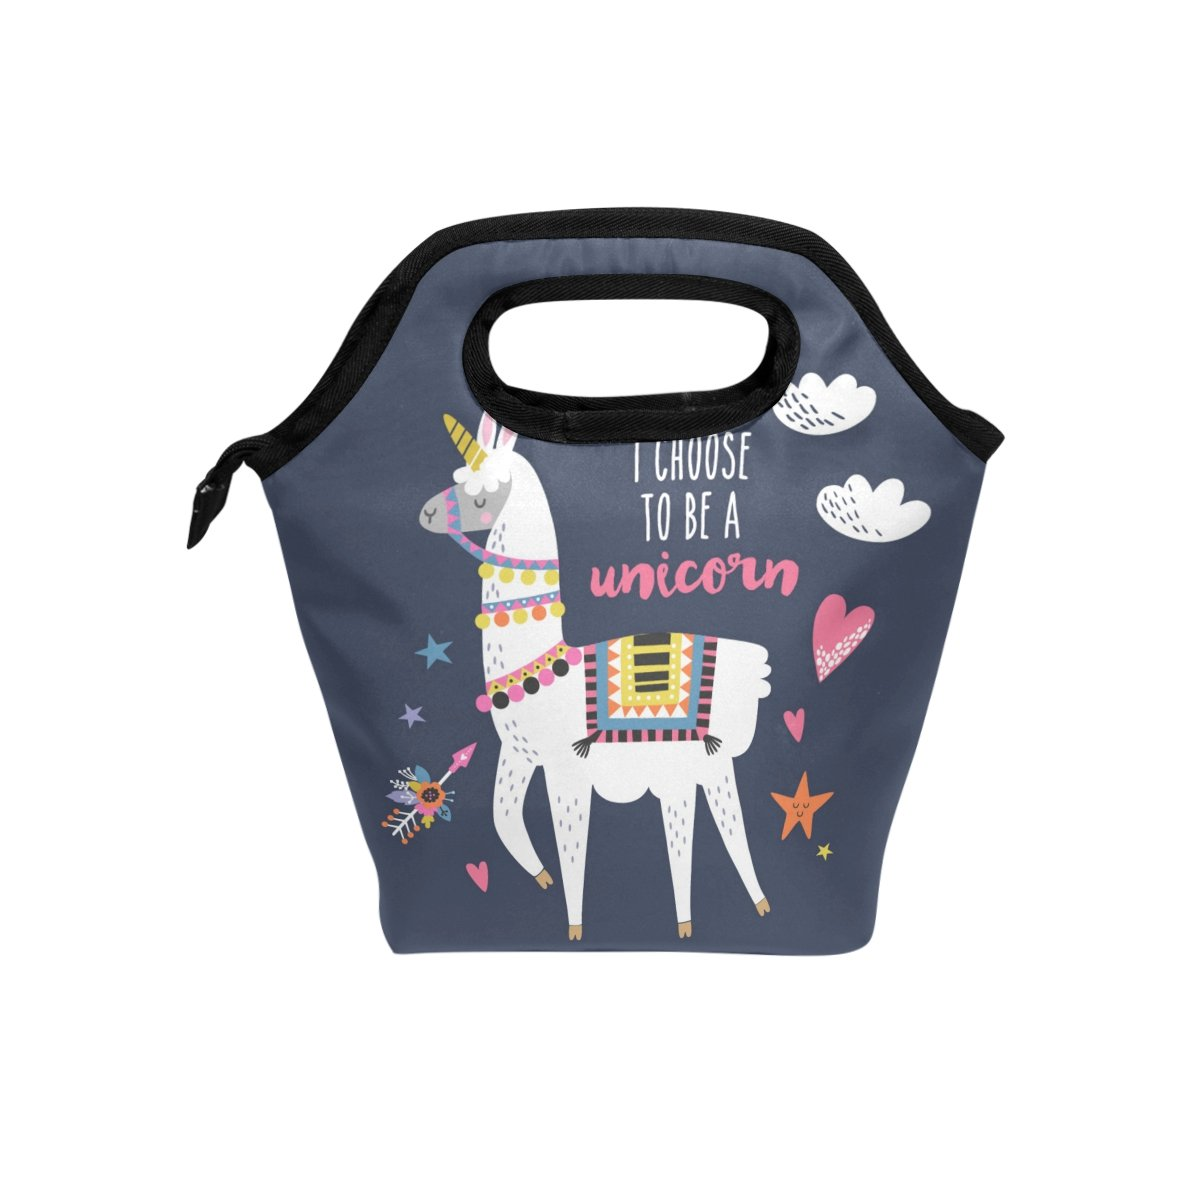 Bettken Lunch Bag Llama Alpaca Unicorn Quote Insulated Reusable Lunch Box Portable Lunch Tote Bag Meal Bag Ice Pack for Kids Boys Girls Adult Men Women